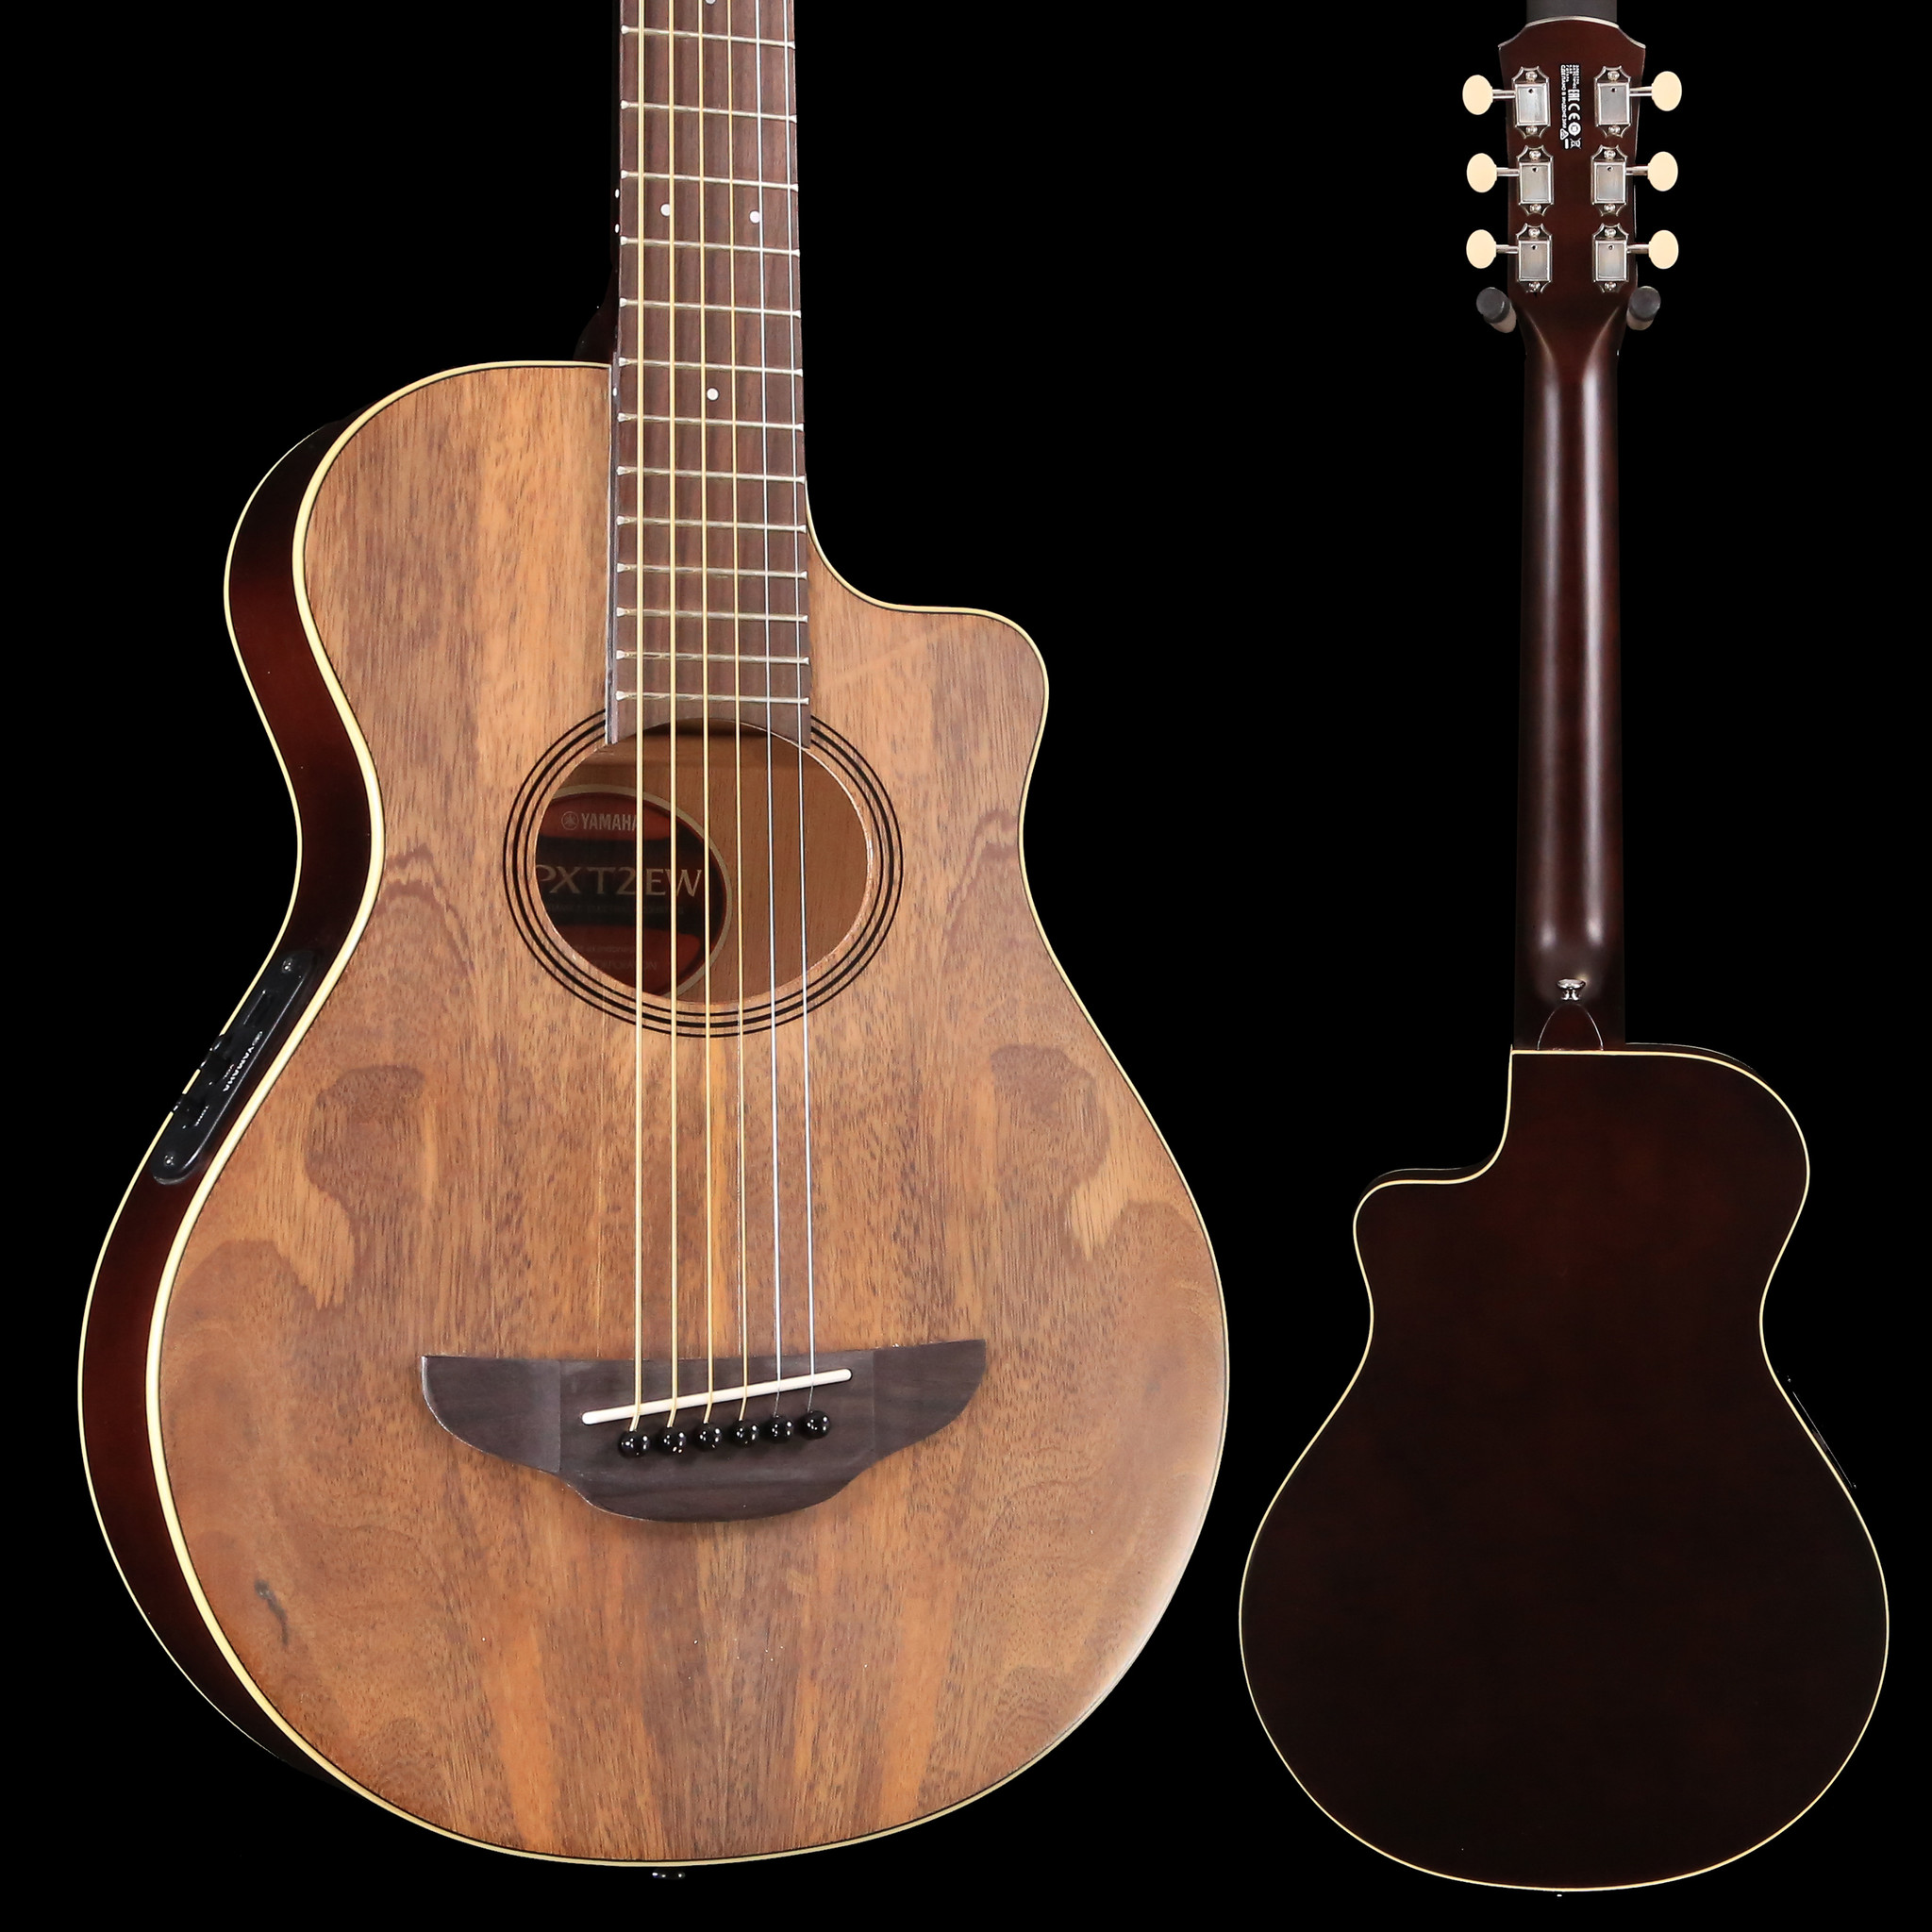 yamaha apxt2ew na natural 3 4 size apx thinline acoustic electric cutaway guitar melody music shop. Black Bedroom Furniture Sets. Home Design Ideas